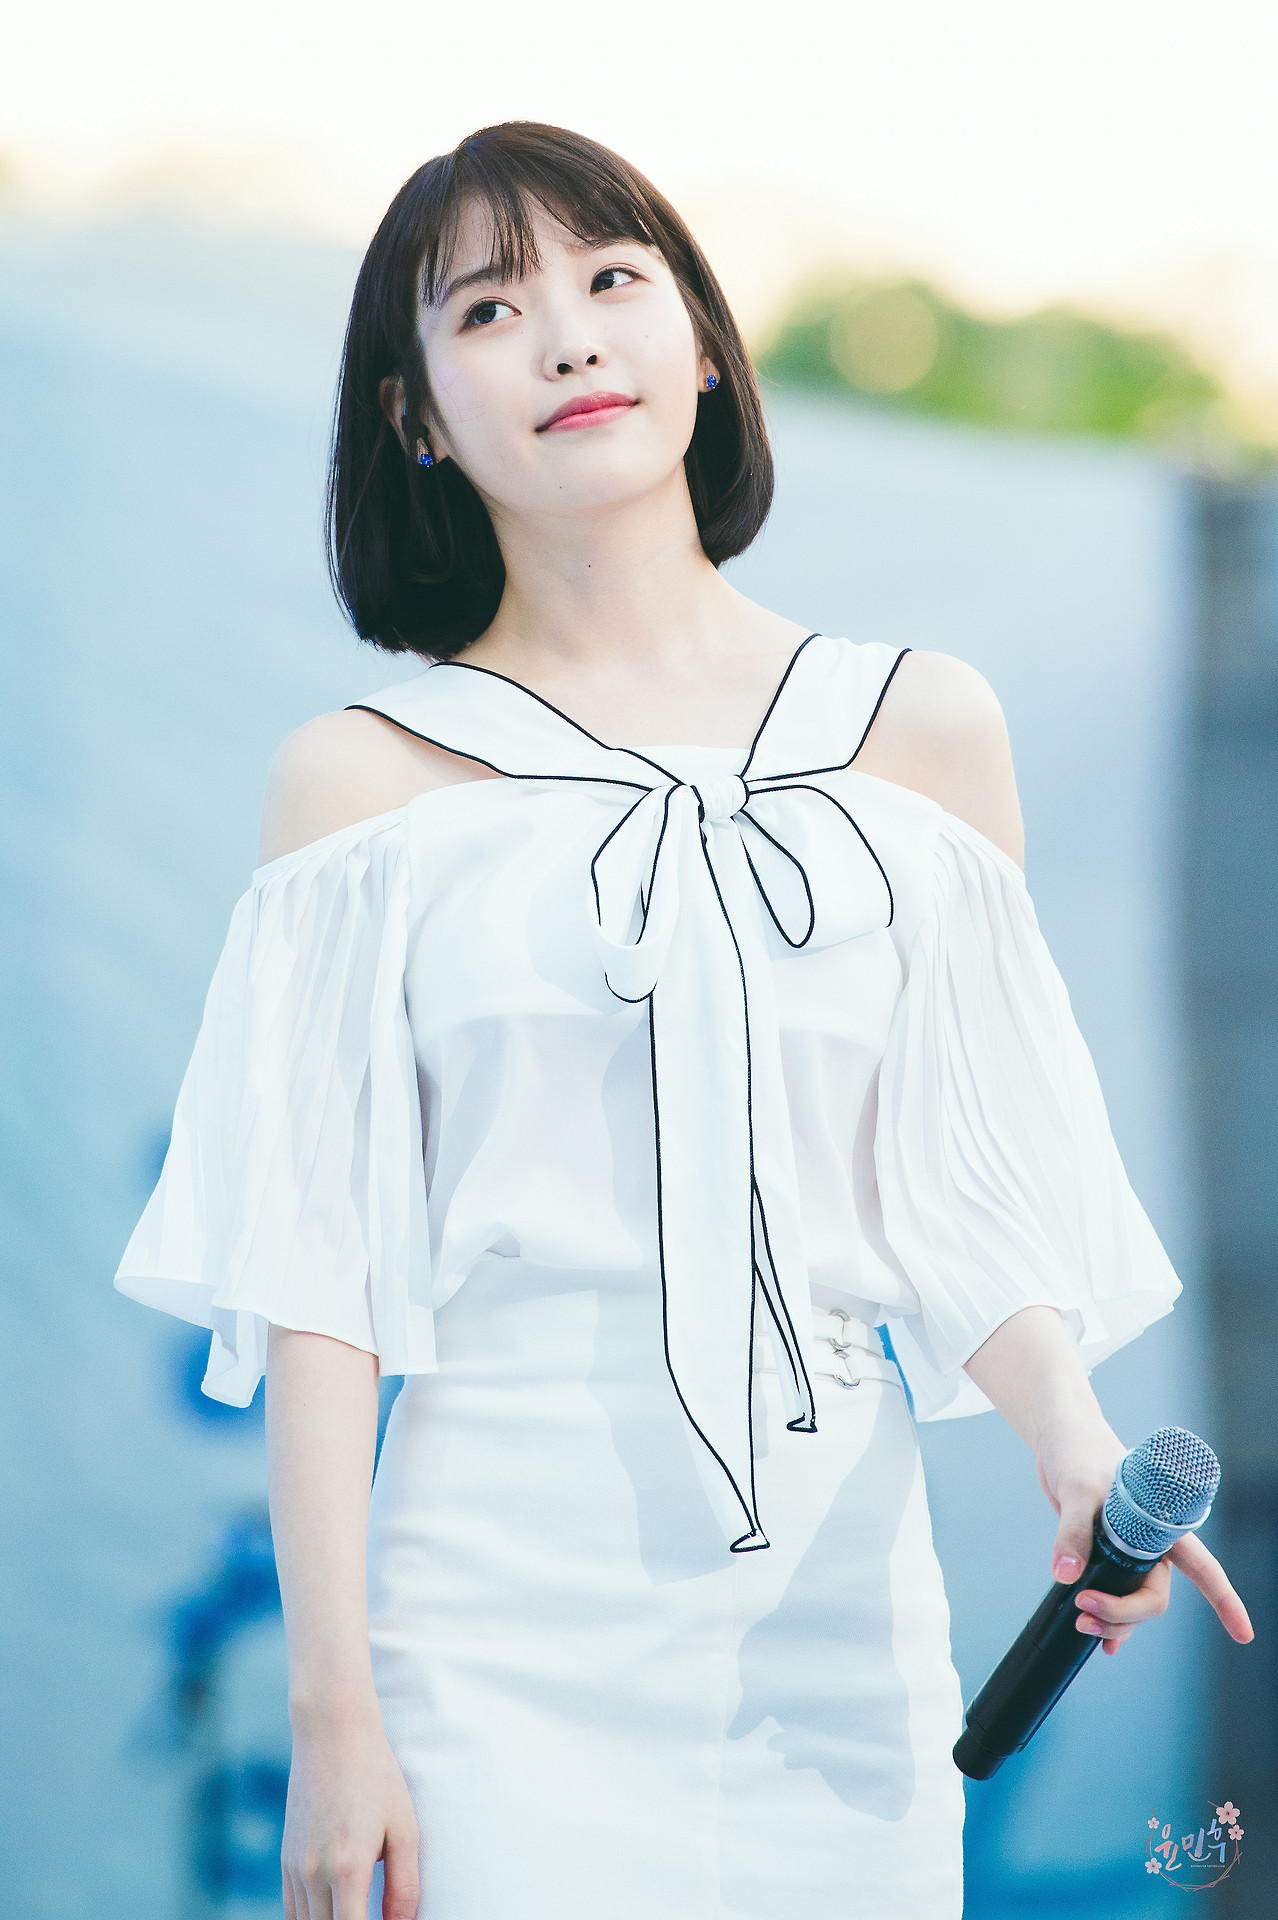 Black Wallpaper Android Iu Android Iphone Wallpaper 150413 Asiachan Kpop Image